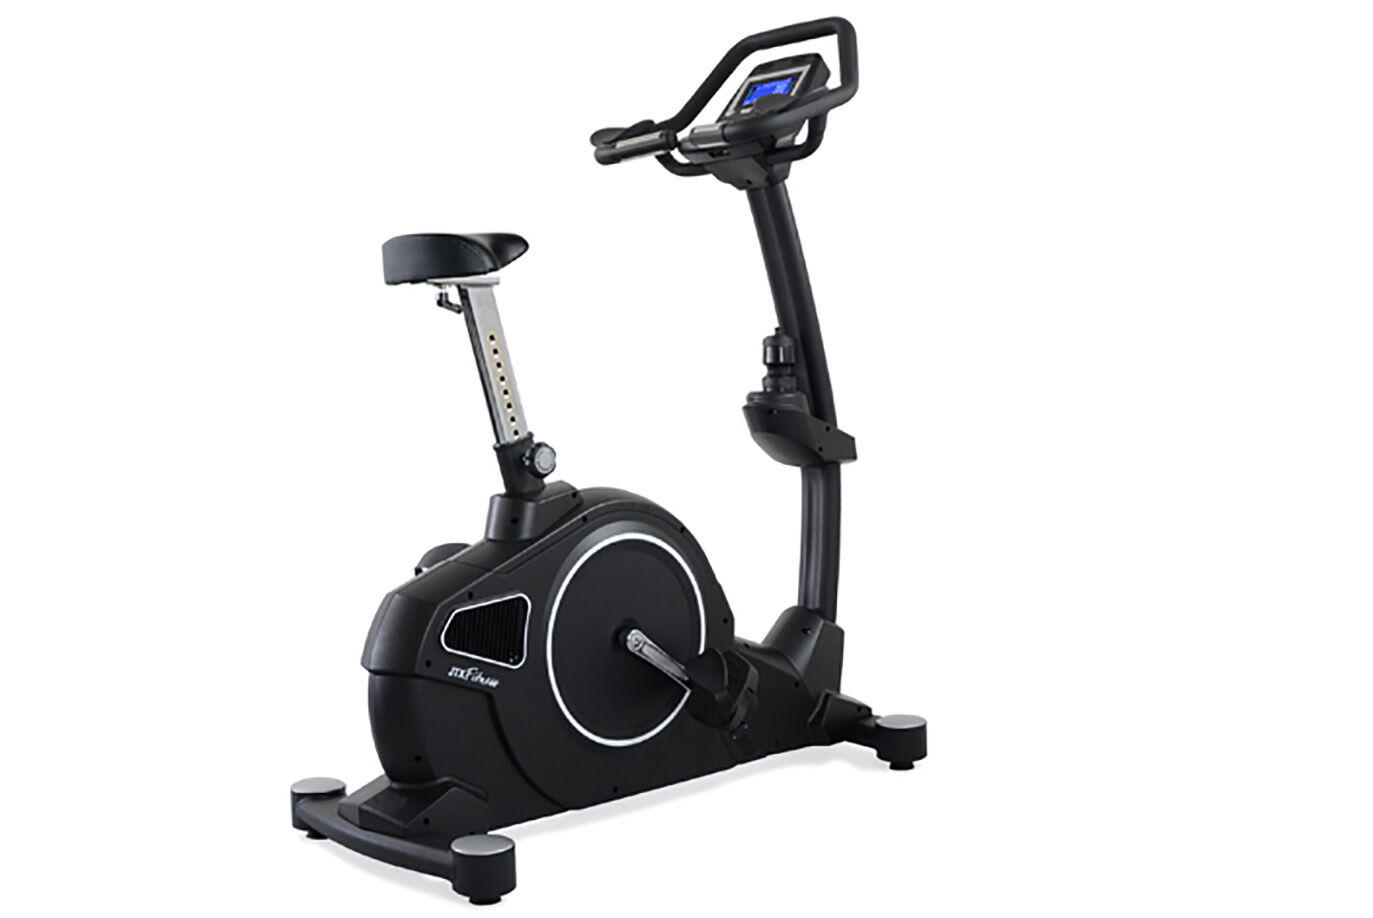 JTX Self Powered Second Hand Exercise Bike